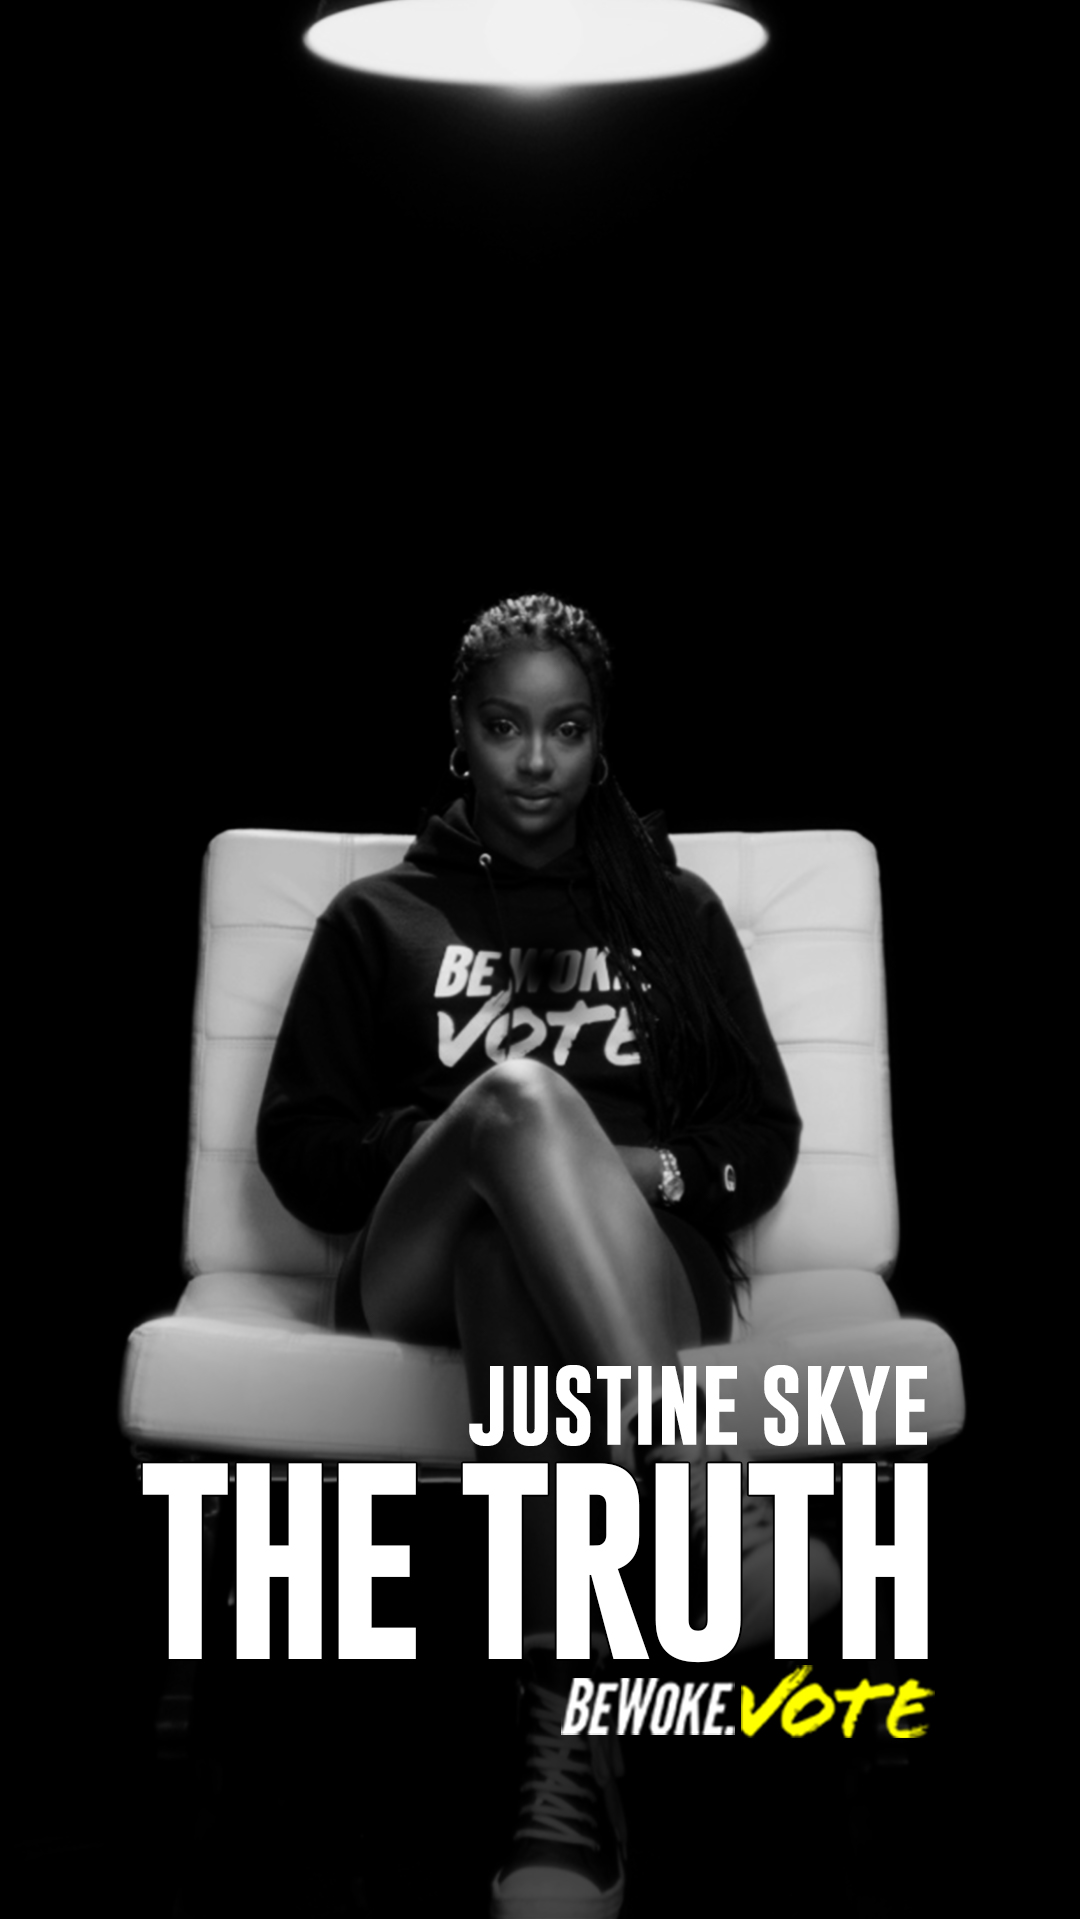 The Truth | Justine Skye